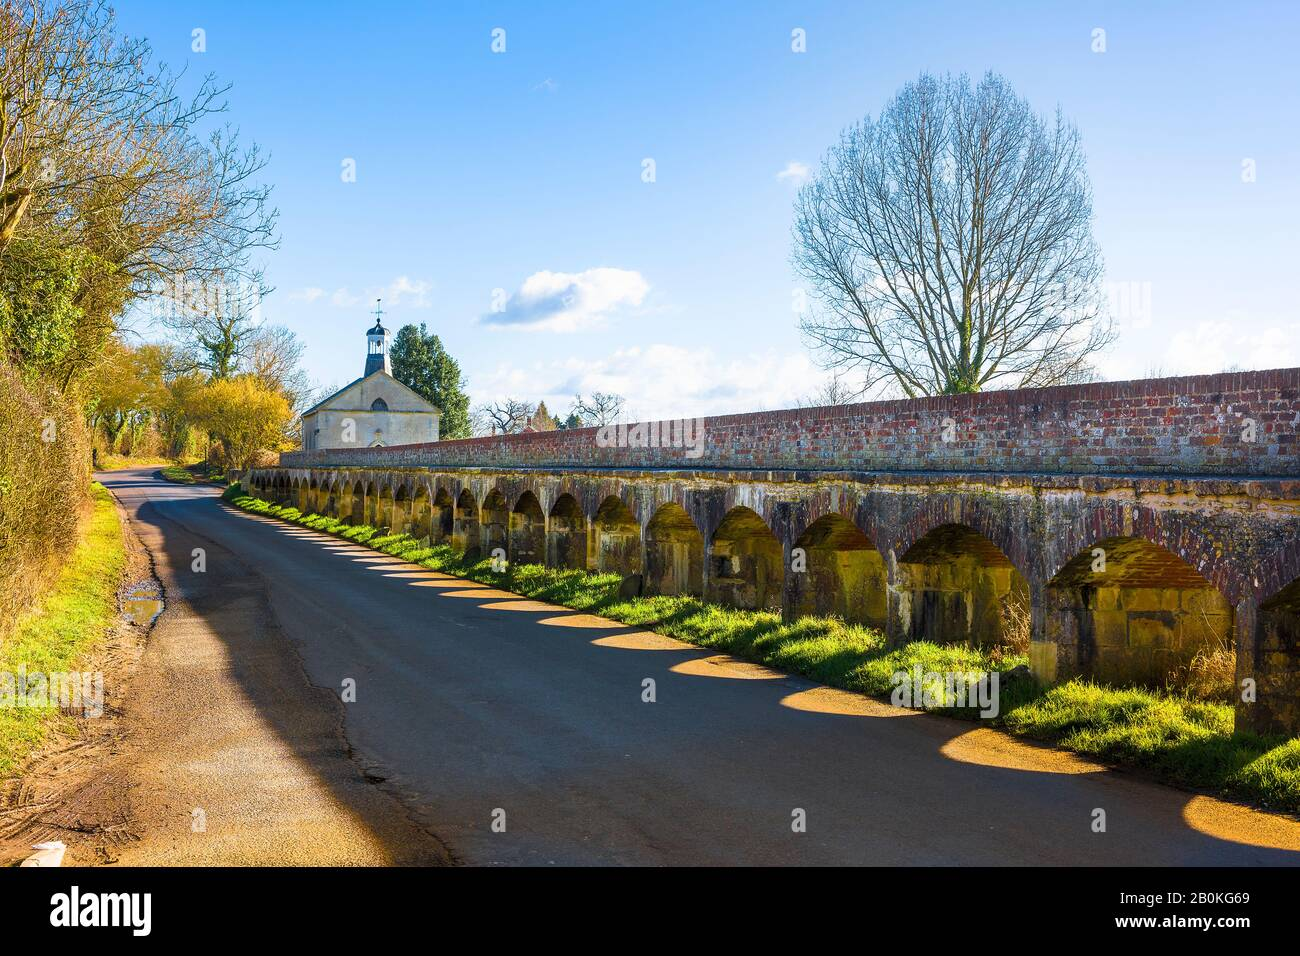 A section of the ancient raised causeway across the River Avon and flood plains at Tytherton Kellaways near Chippenham Wiltshire England UK Stock Photo